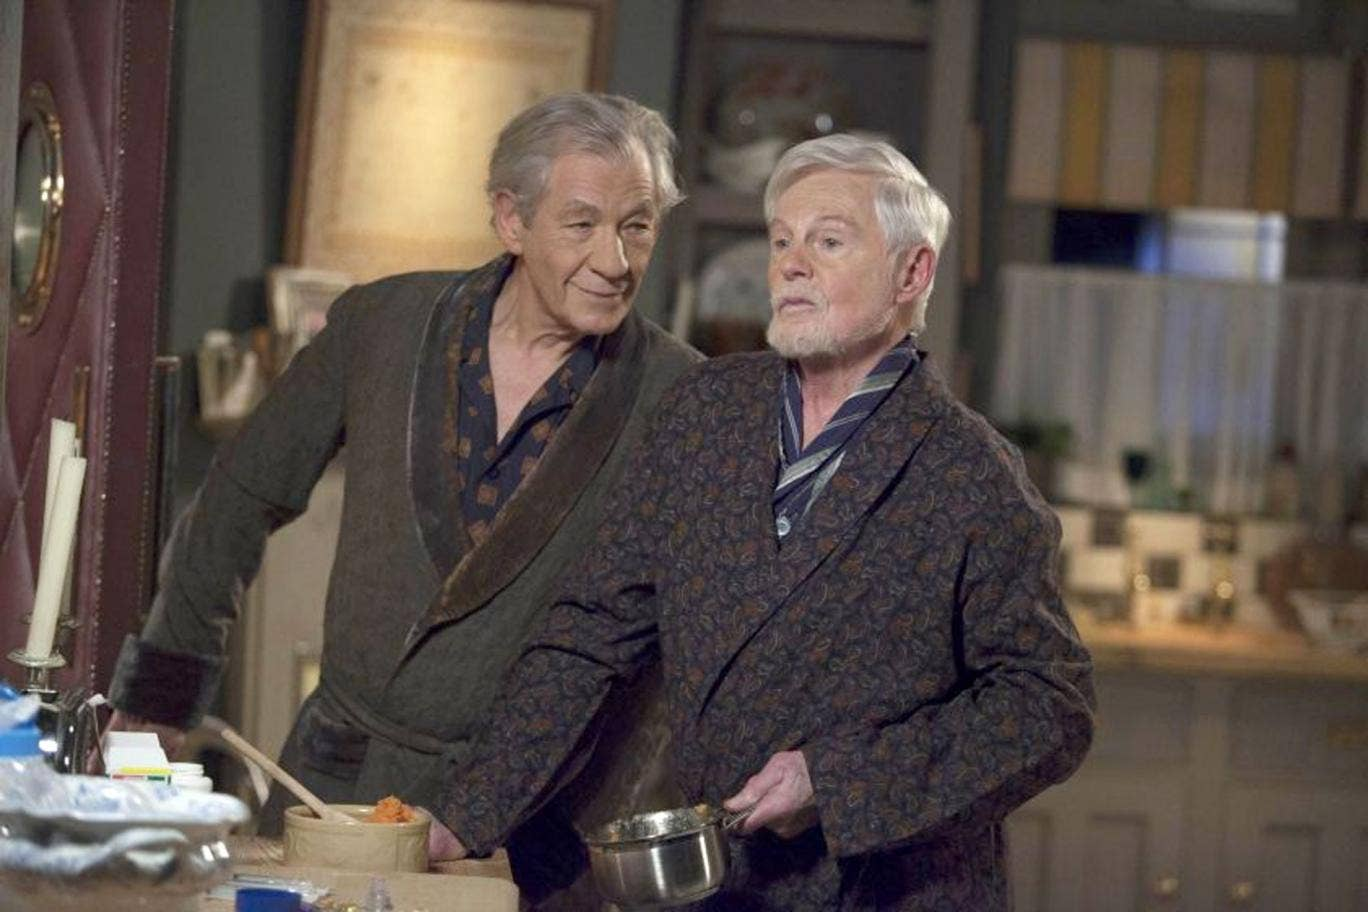 Sir Ian McKellen and Sir Derek Jacobi star as lifelong partners growing rancorously old together in ITV's new sitcom Vicious